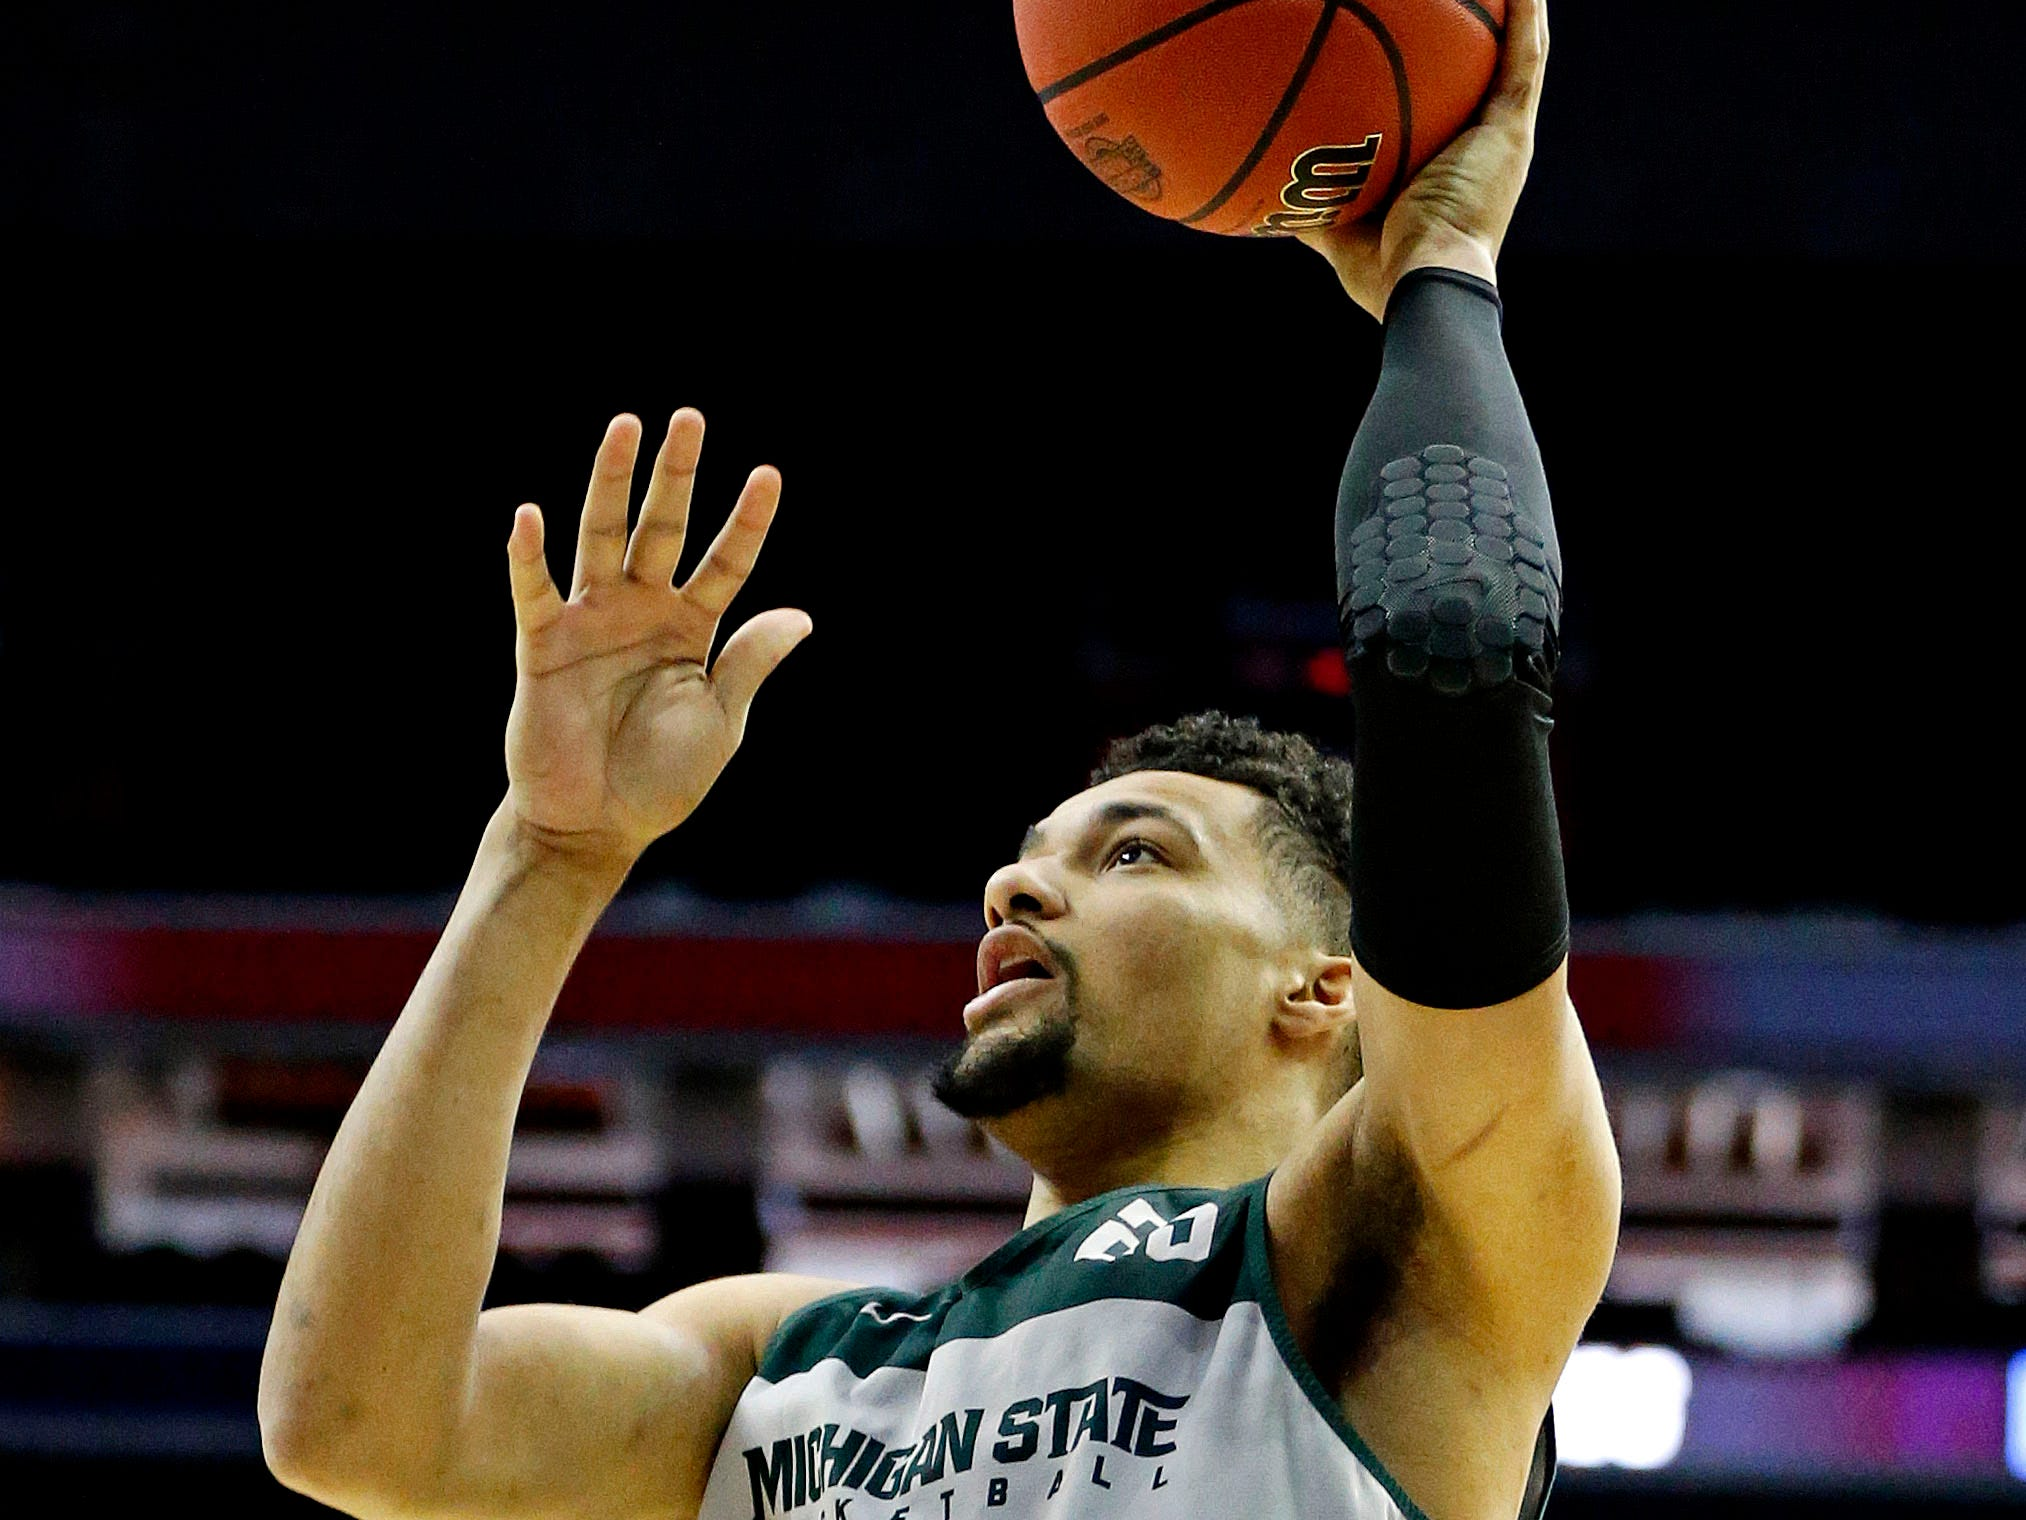 Mar 28, 2019; Washington, DC, USA; Michigan State Spartans forward Kenny Goins (25) shoots the ball during practice for the east regional of the 2019 NCAA Tournament at Capital One Arena. Mandatory Credit: Amber Searls-USA TODAY Sports